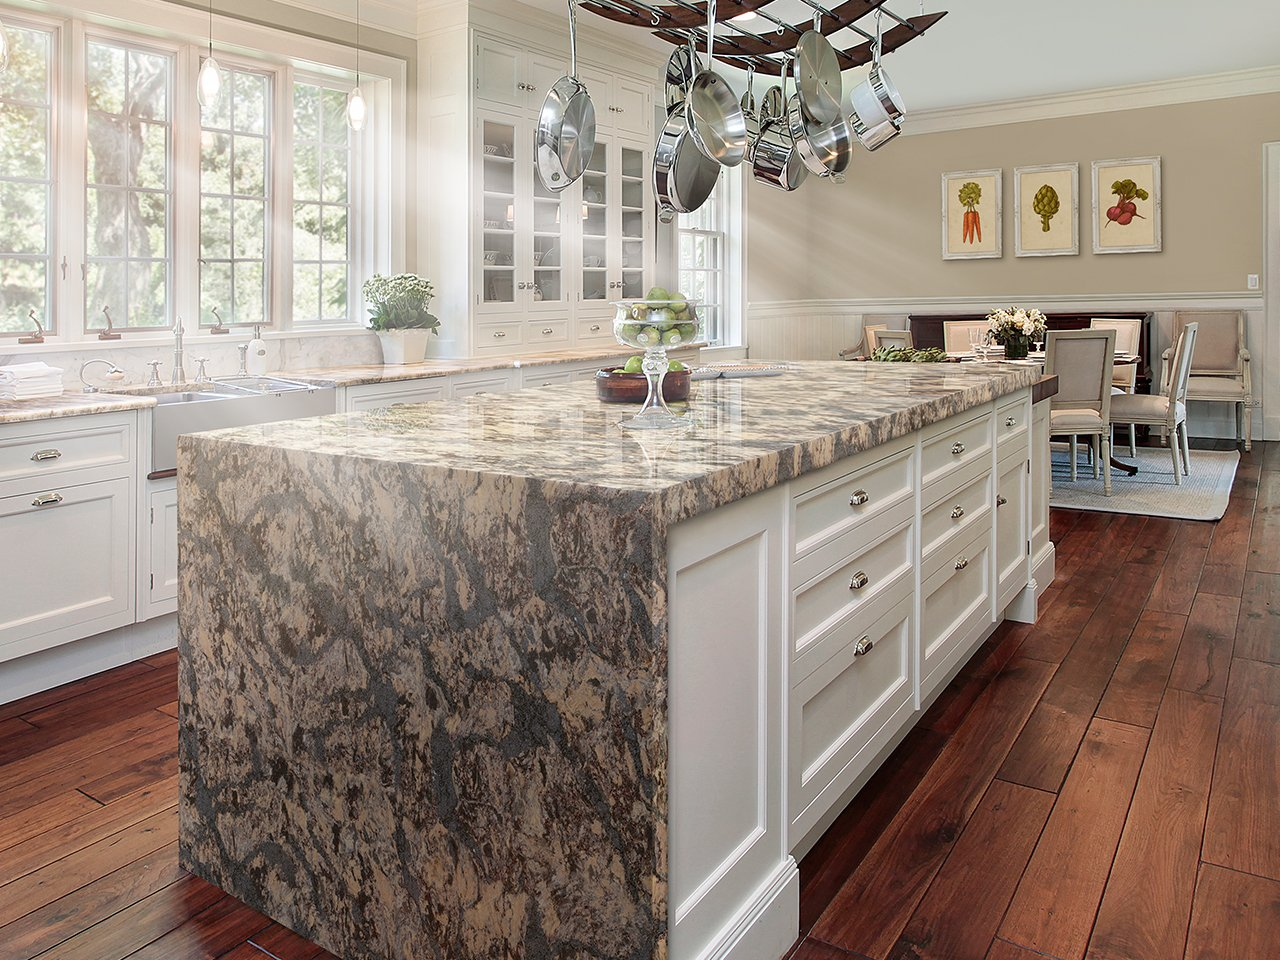 Removing scratches from quartz countertops1 (2).jpg